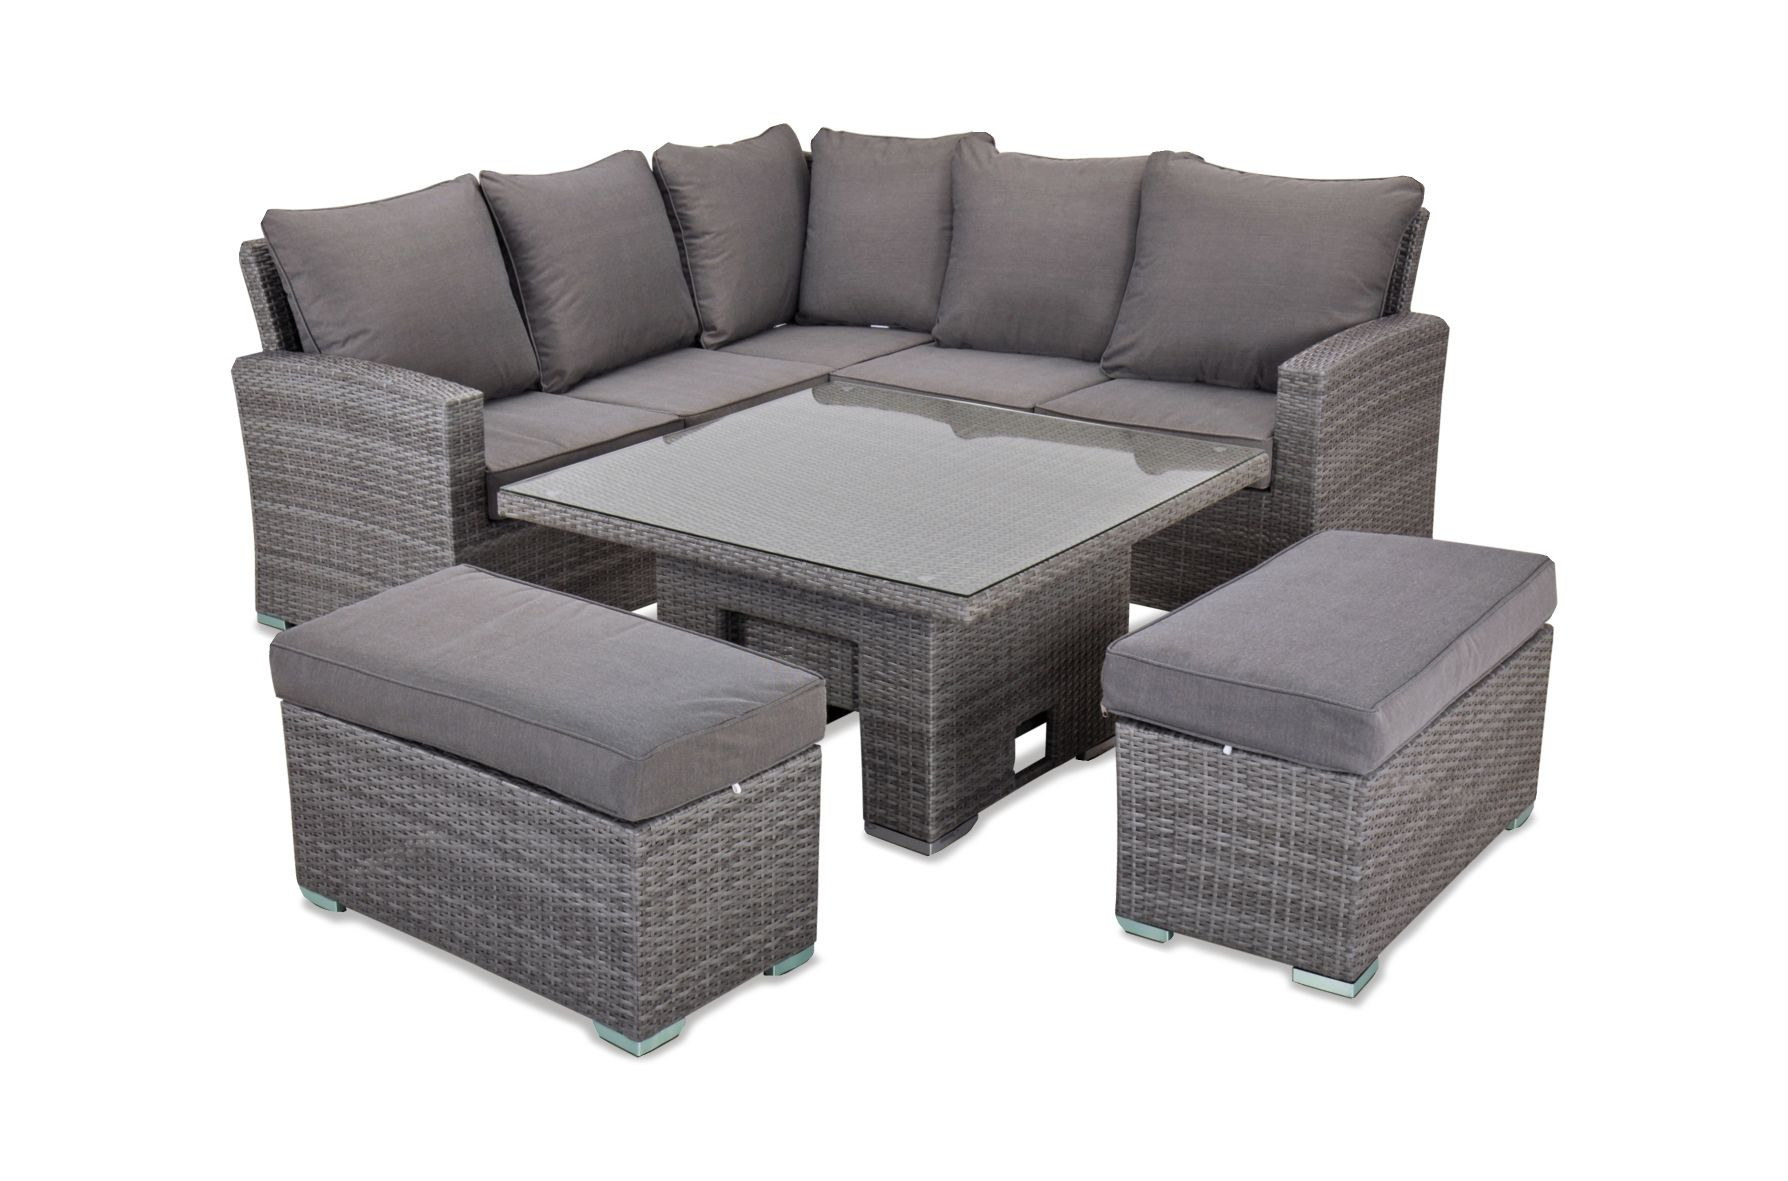 Zoo Interiors Home Furniture Garden Rattan Furniture In Nottingham - Garden Furniture Clearance Edinburgh